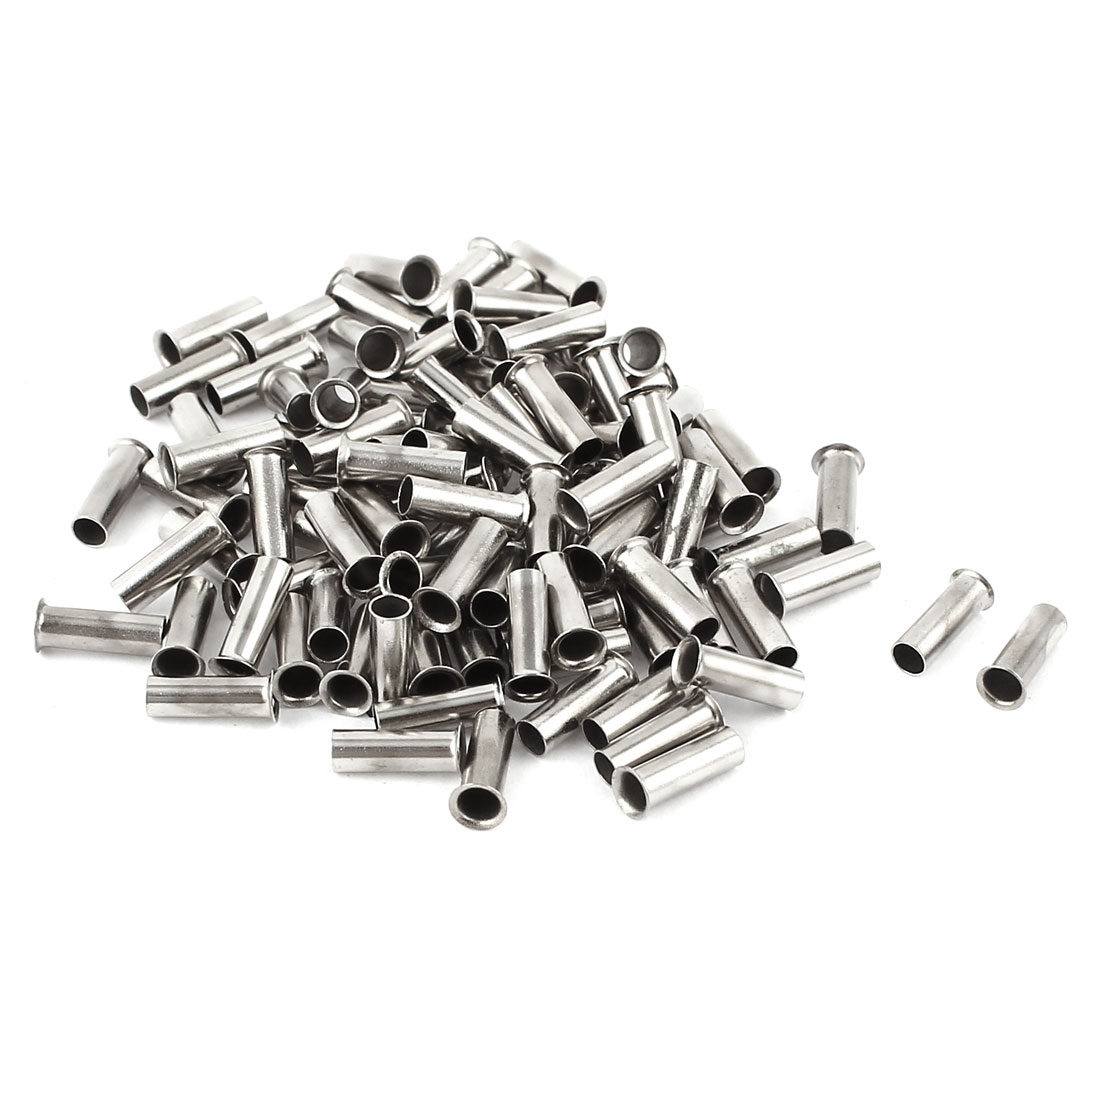 100 Pieces Silver Tone EN2508 Copper A.W.G 14 8mmx3mm Non-Insulated Wire Ferrule